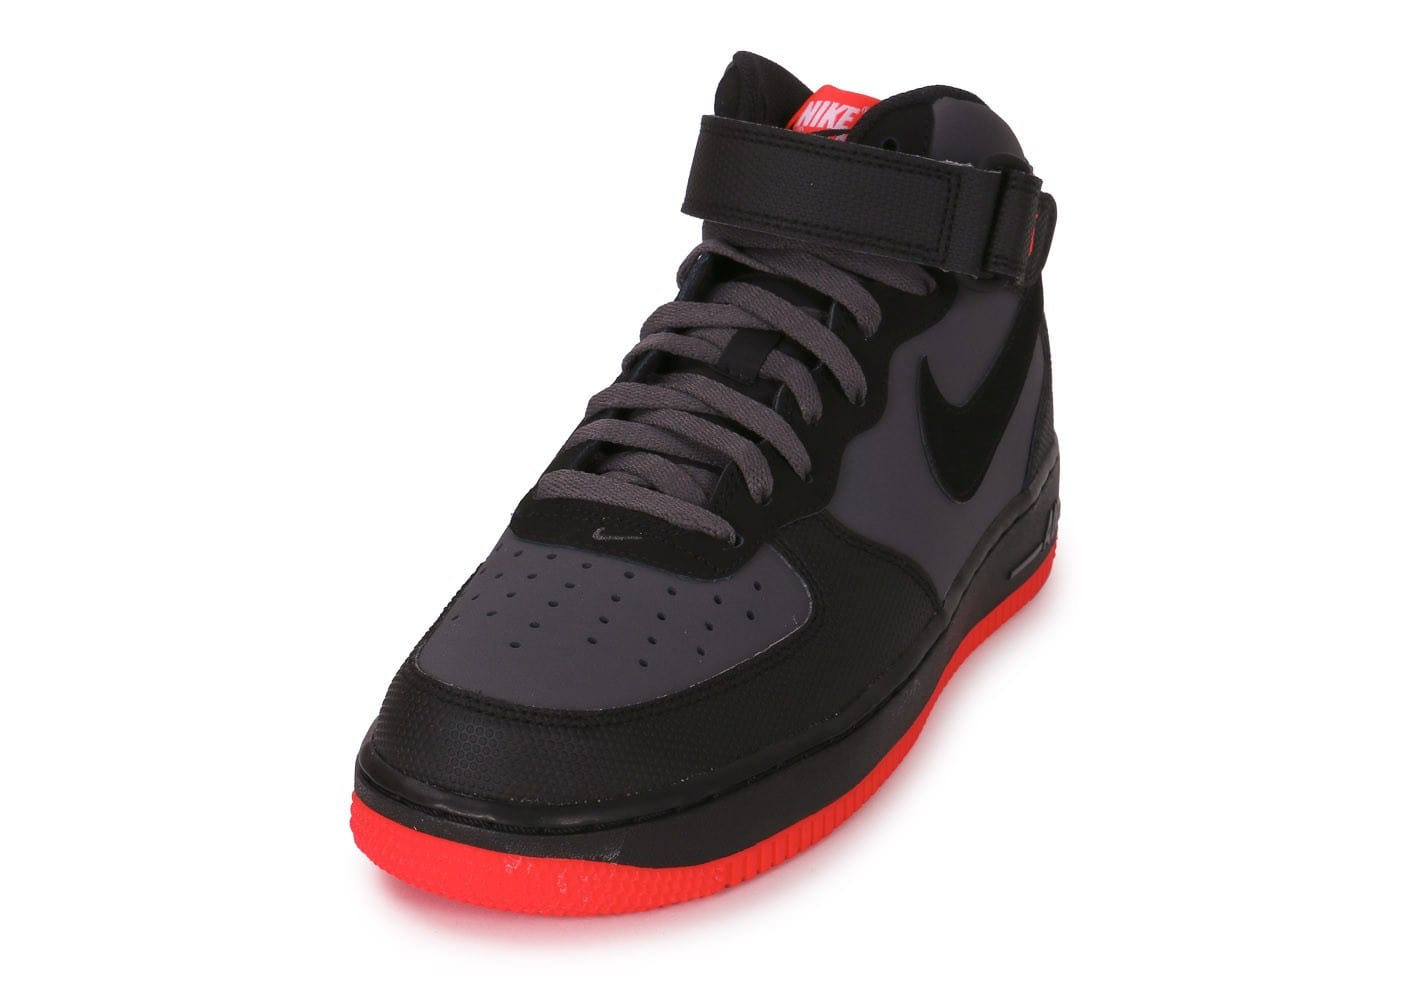 Nike Grise Chausport Baskets Force 1 07 Air Mid Chaussures Homme vnmN80w